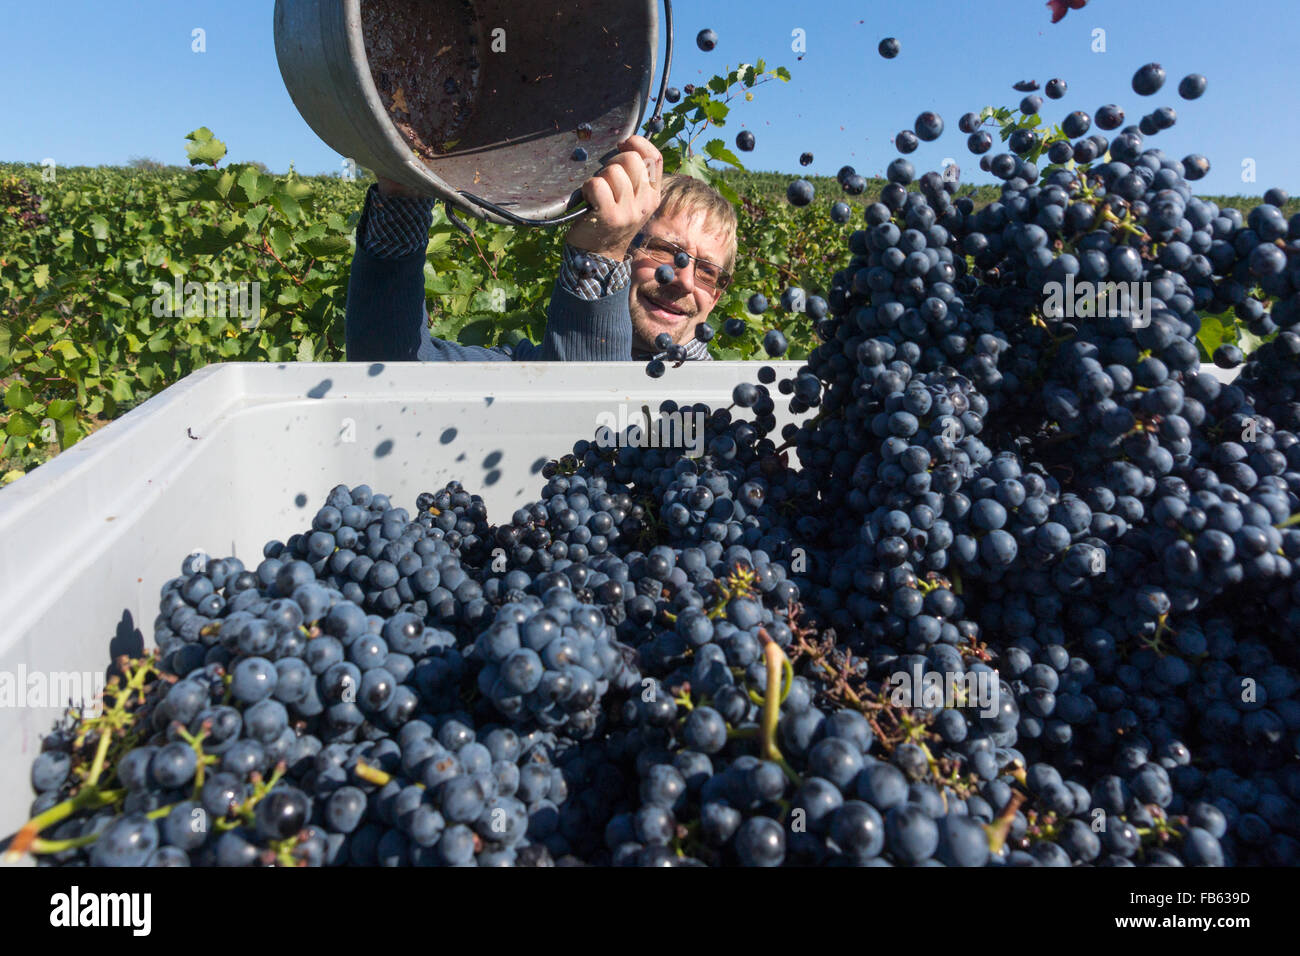 a-vintner-filling-a-container-with-grape